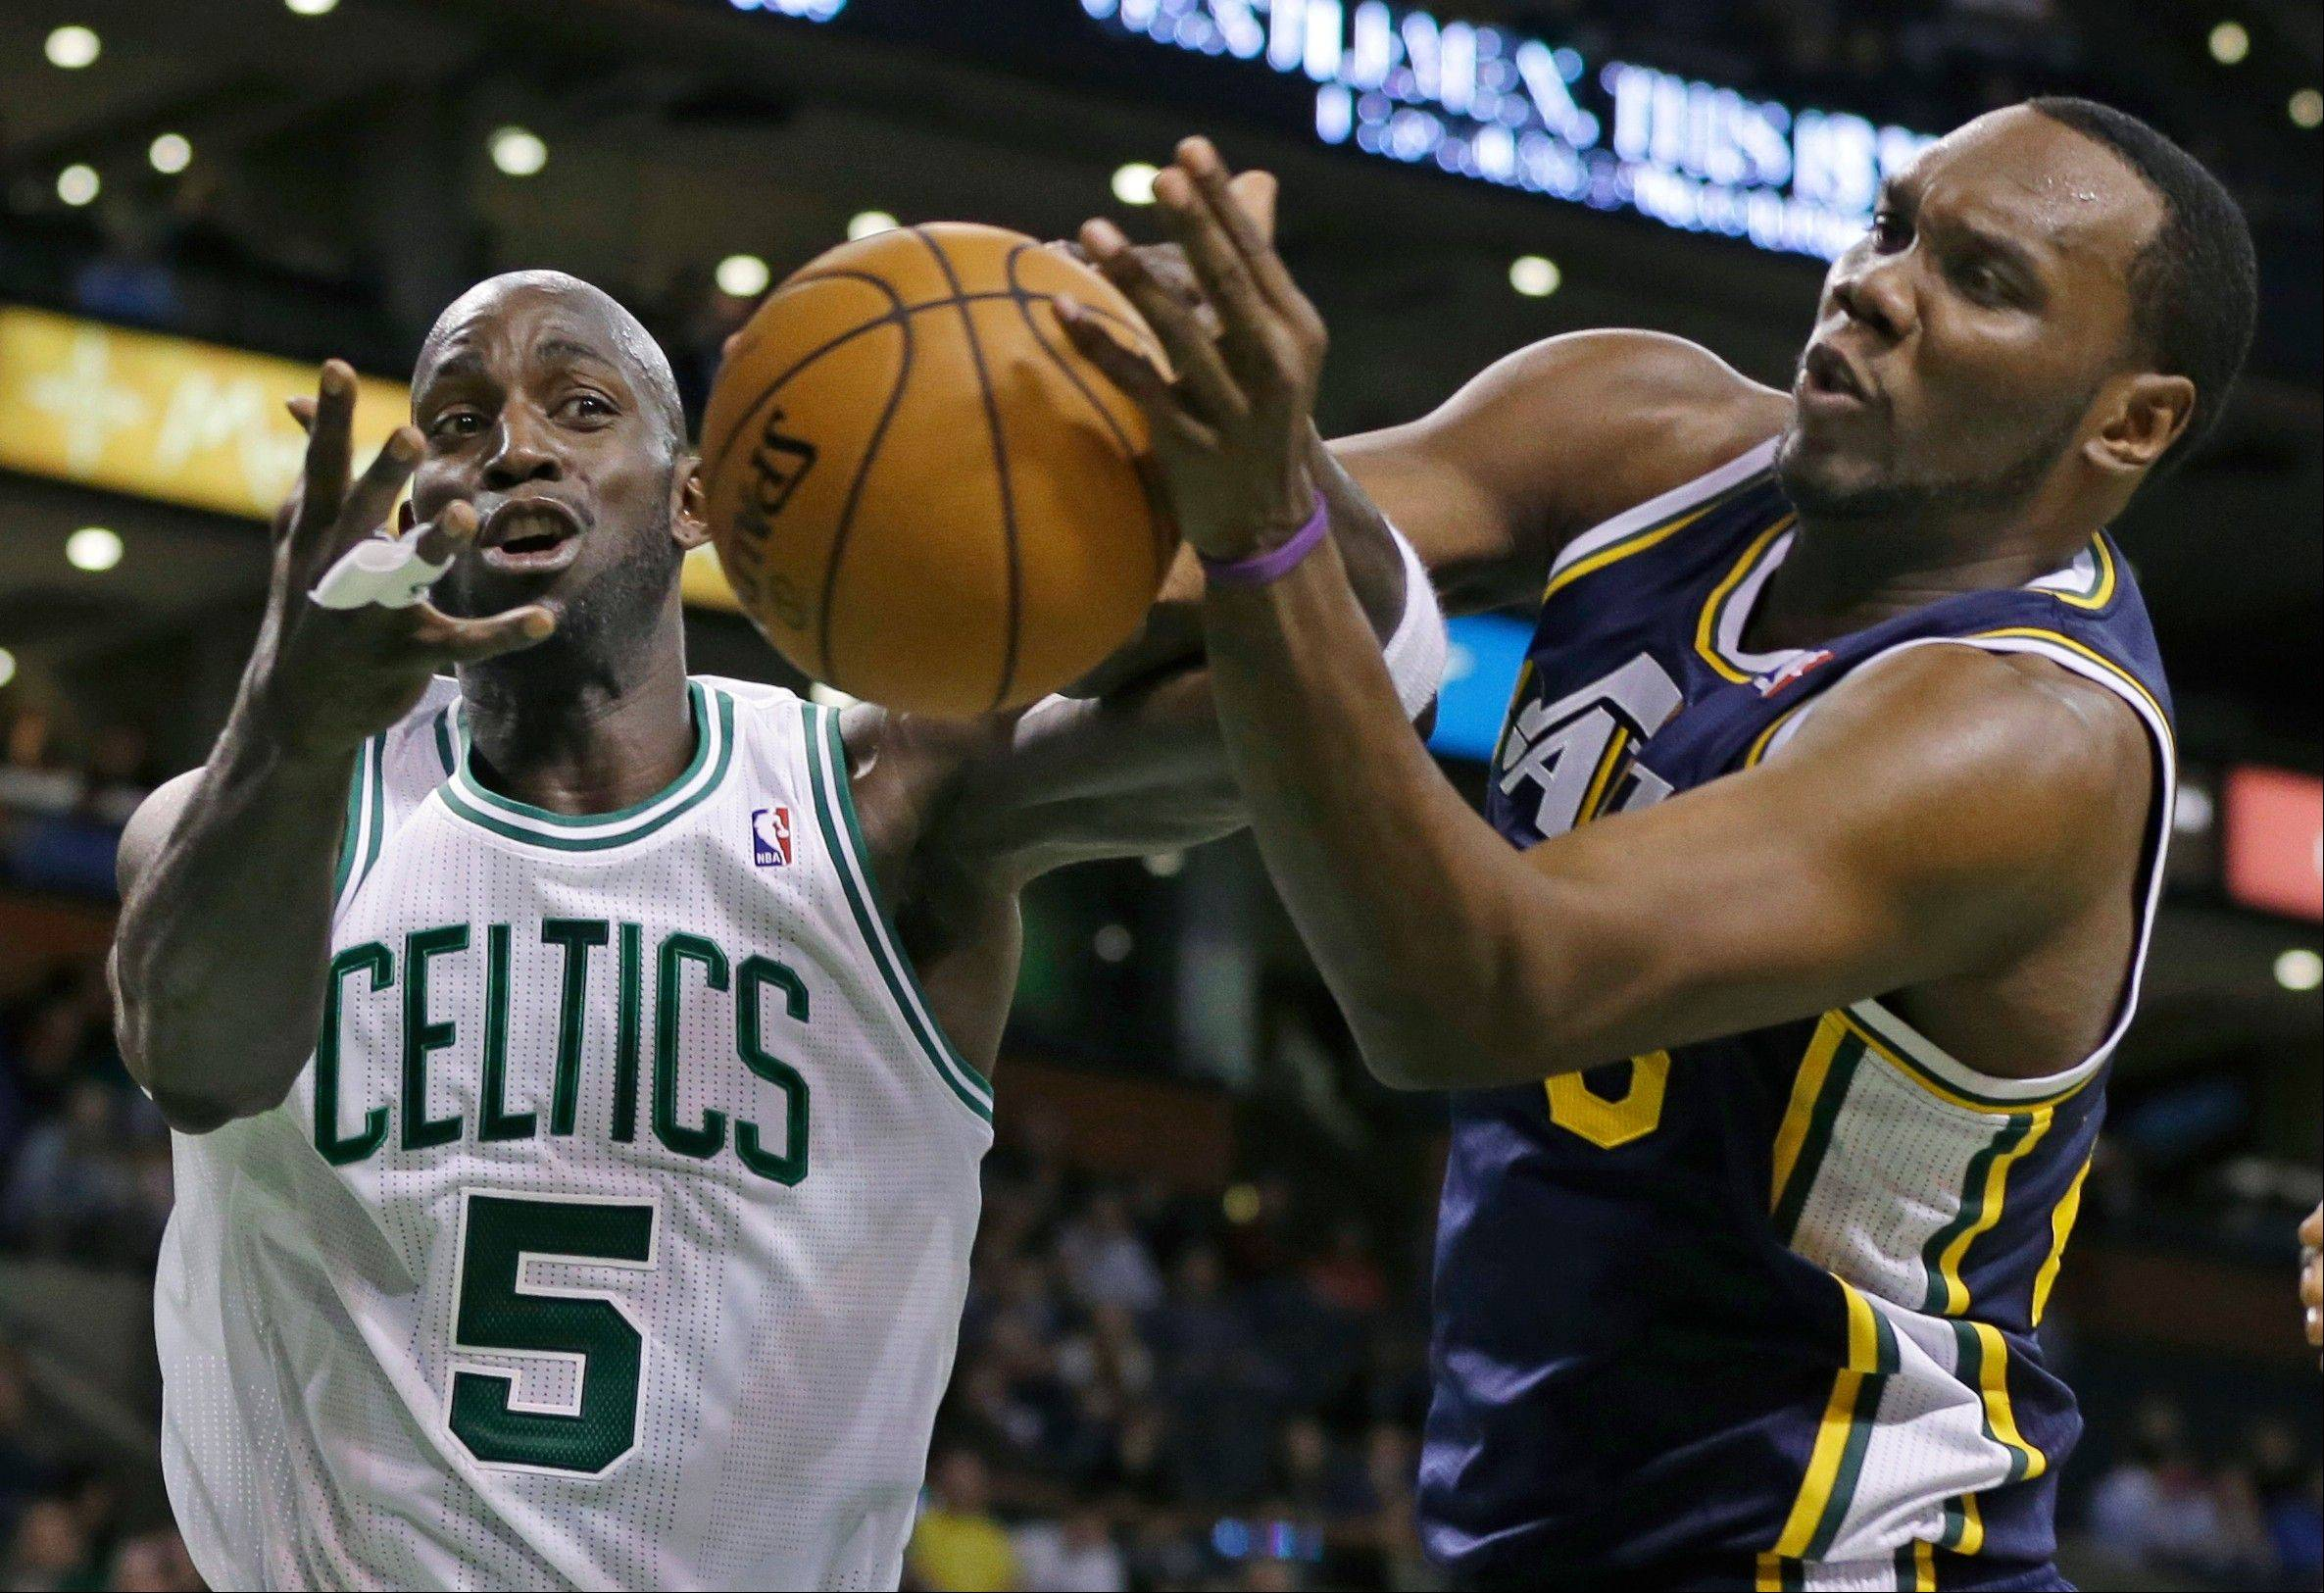 Boston Celtics power forward Kevin Garnett battles for a loose ball with Utah Jazz center Al Jefferson Wednesday during the first half in Boston.